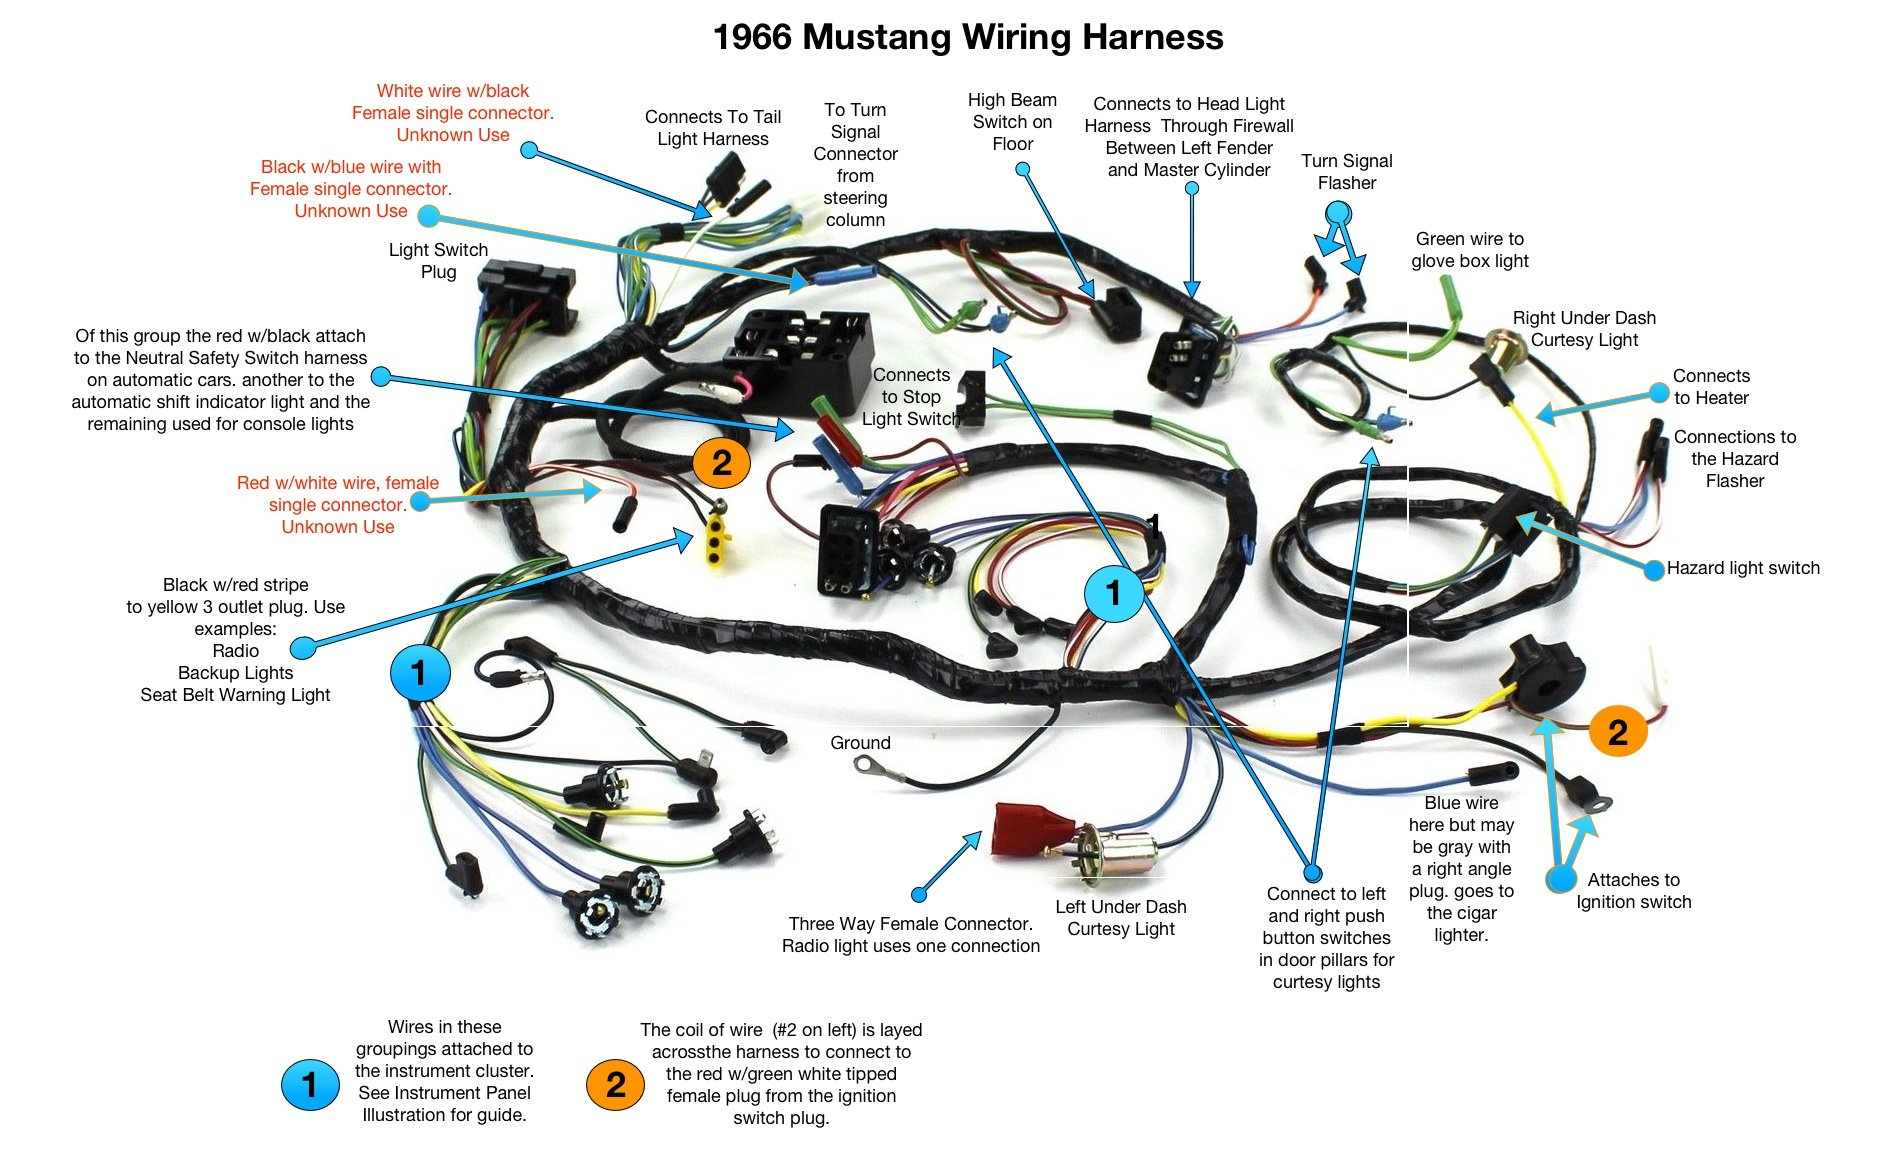 mustang wiring harness wiring diagram blog 1988 Mustang Wiring Harness mustang wiring harness